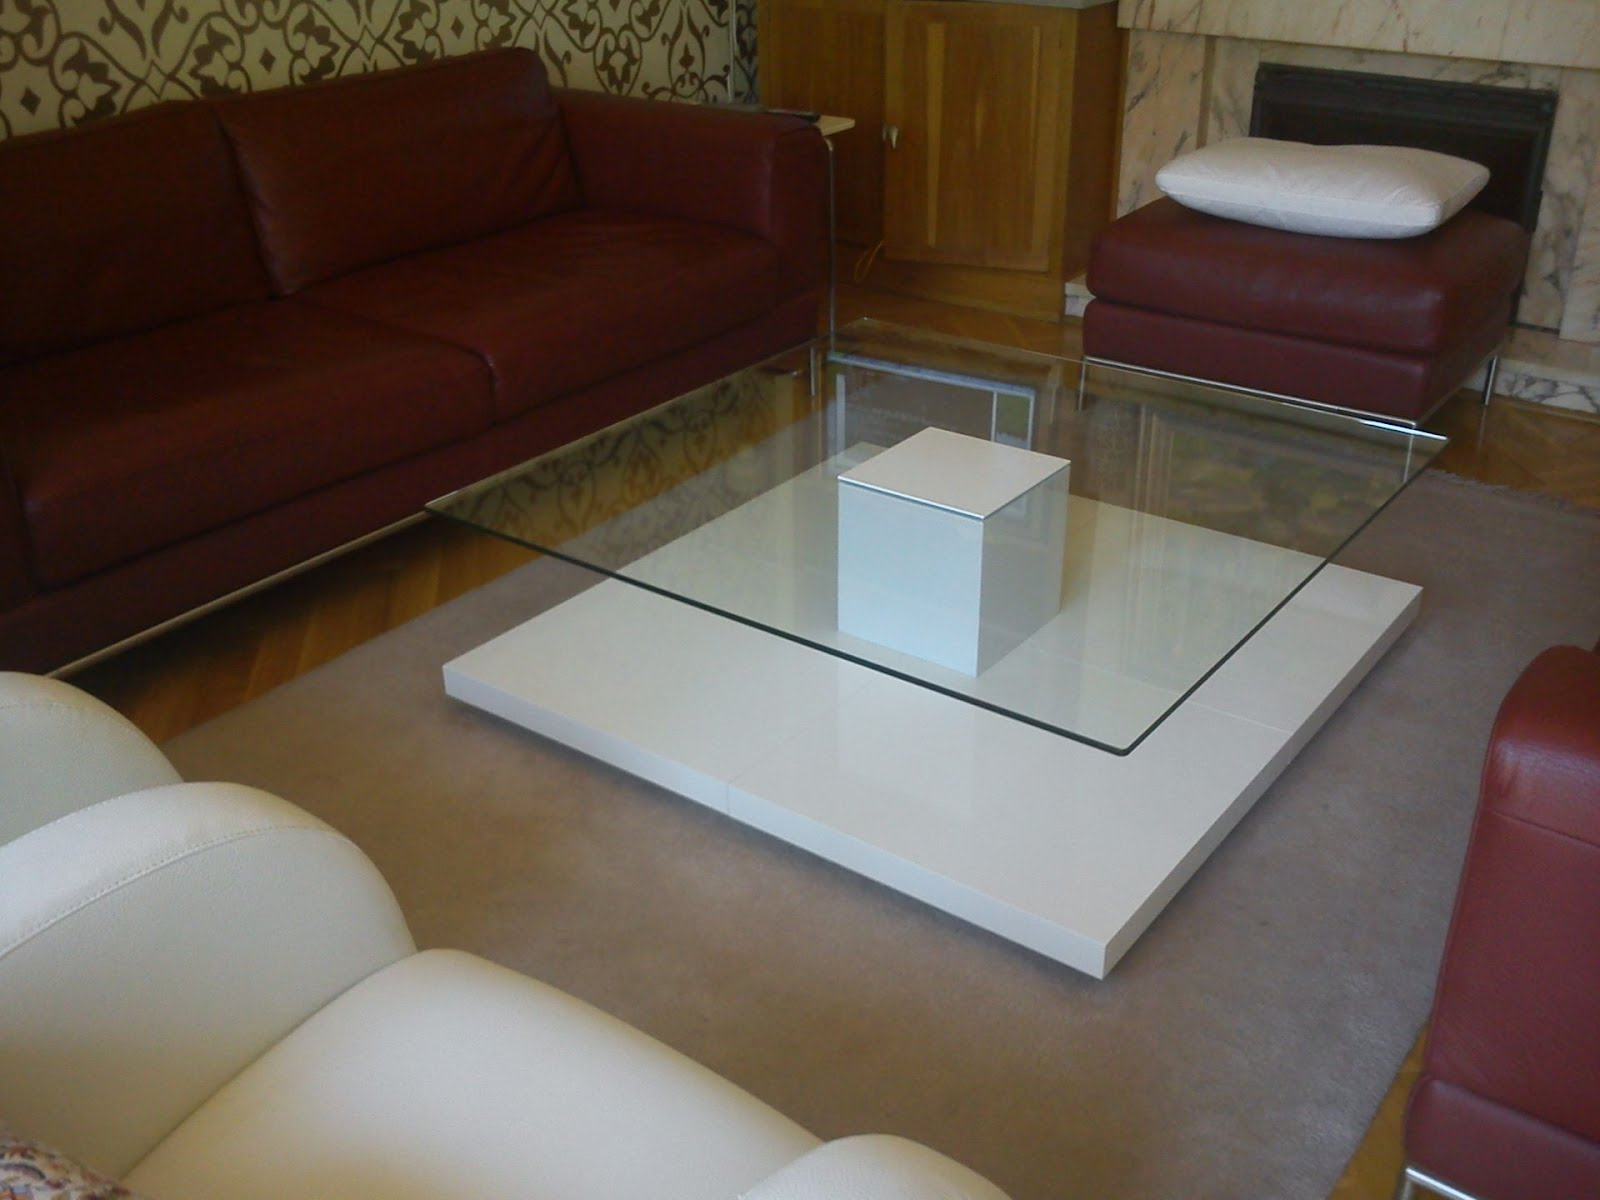 Glass Top Coffee Table Ikea Beautiful Interior Furniture Design Simple Woodworking Projects For Cub Scouts (Image 3 of 10)